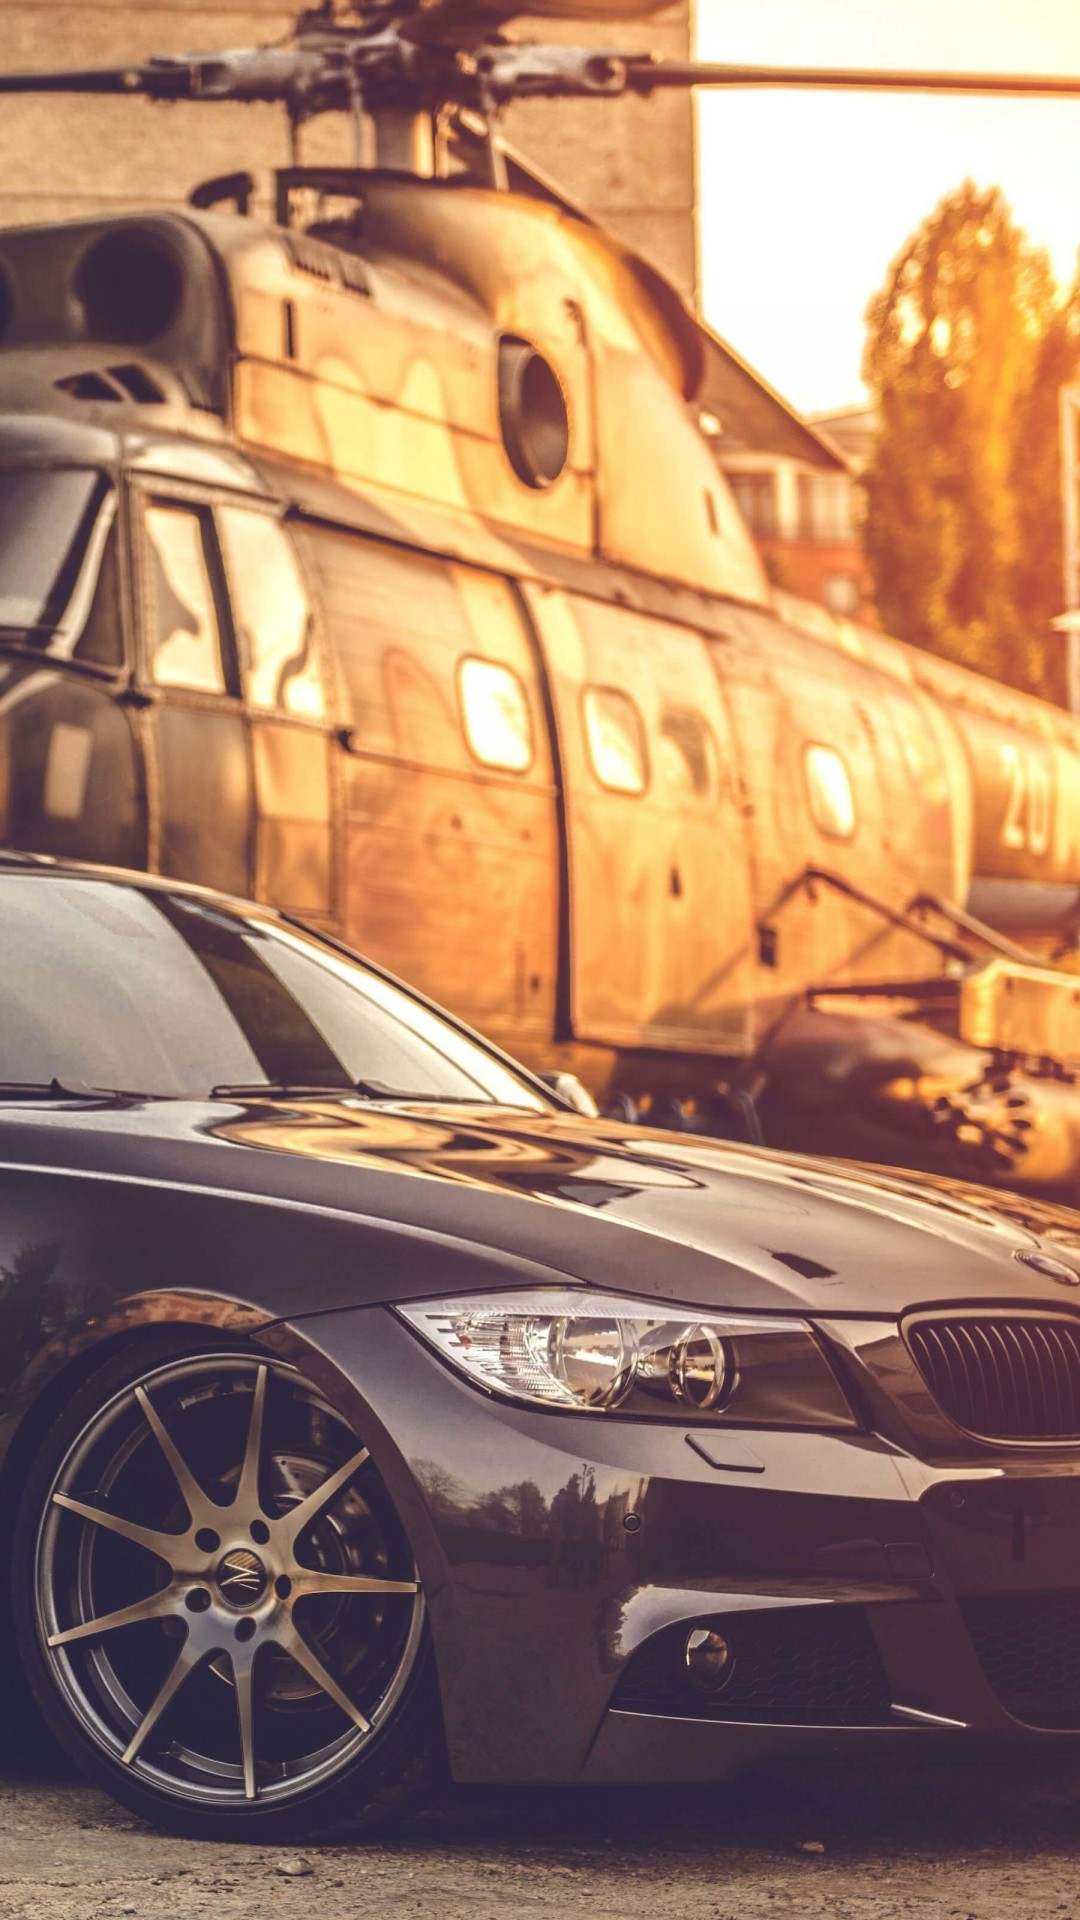 BMW E90 on Z-Performance Wheels Wallpaper for Google Nexus 5X